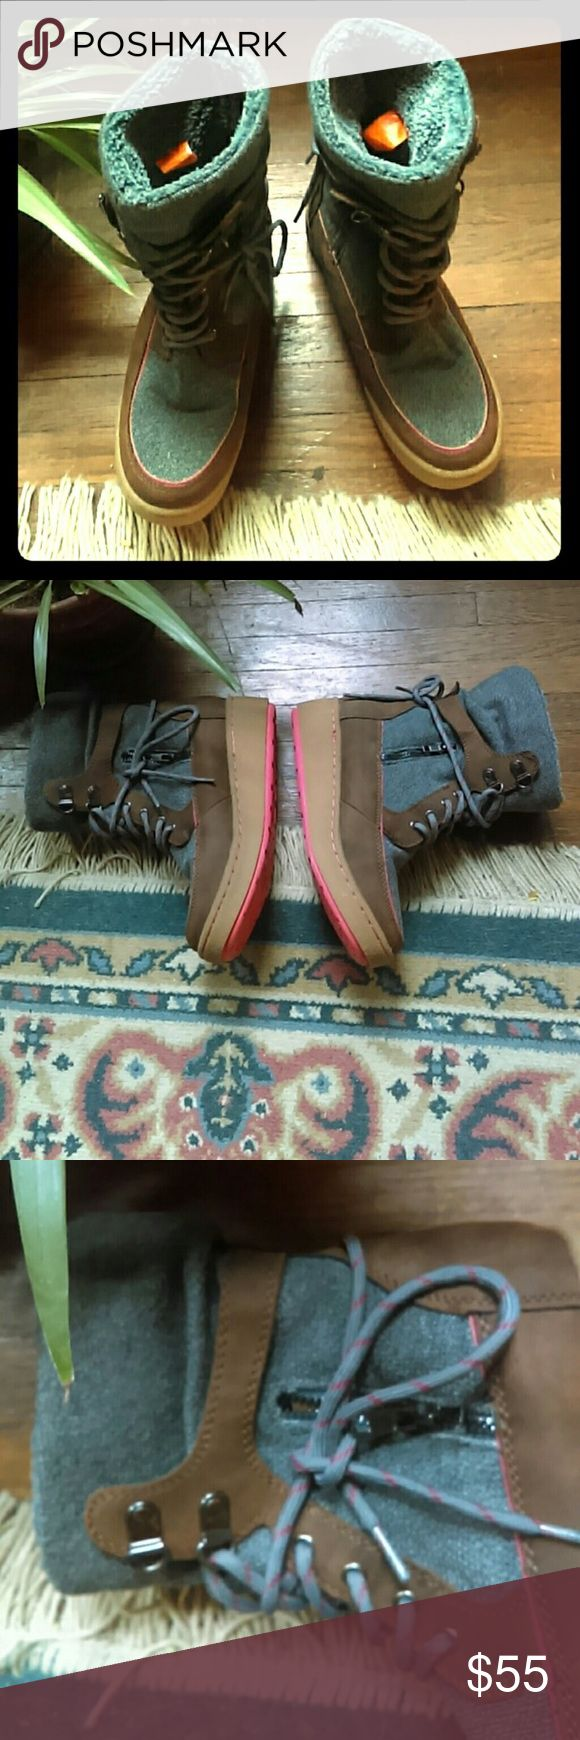 Rocket Dog Boots! These boots are practically brand new. I got them and they are too small for me. Only worn once! Very cute and trendy. It's boot season! Stock up! Rocket Dog Shoes Winter & Rain Boots